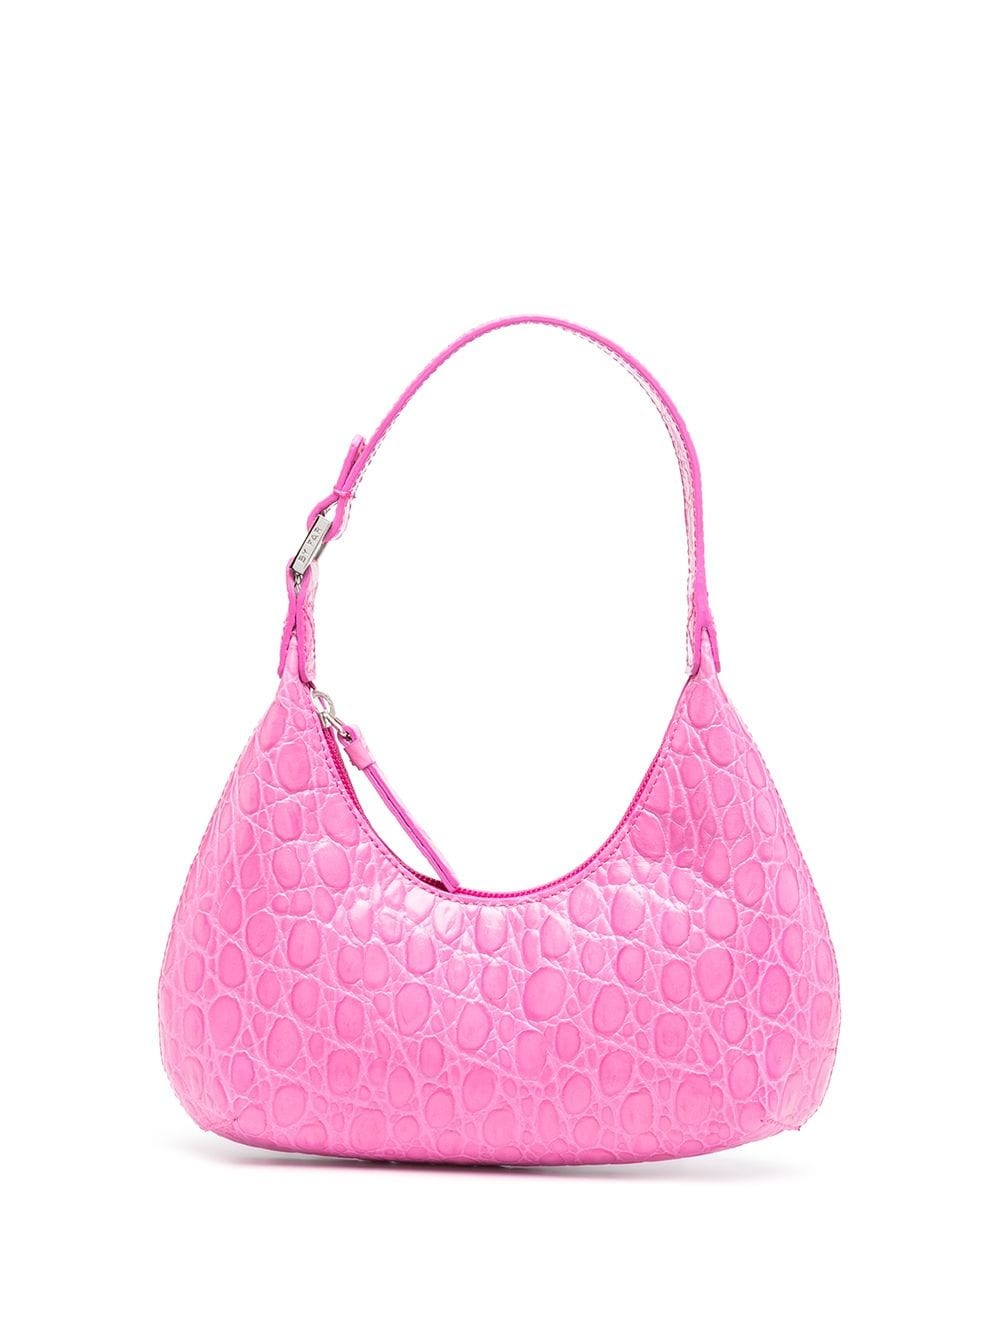 Baby Amber Fuchsia Circular Croco Embossed Leather